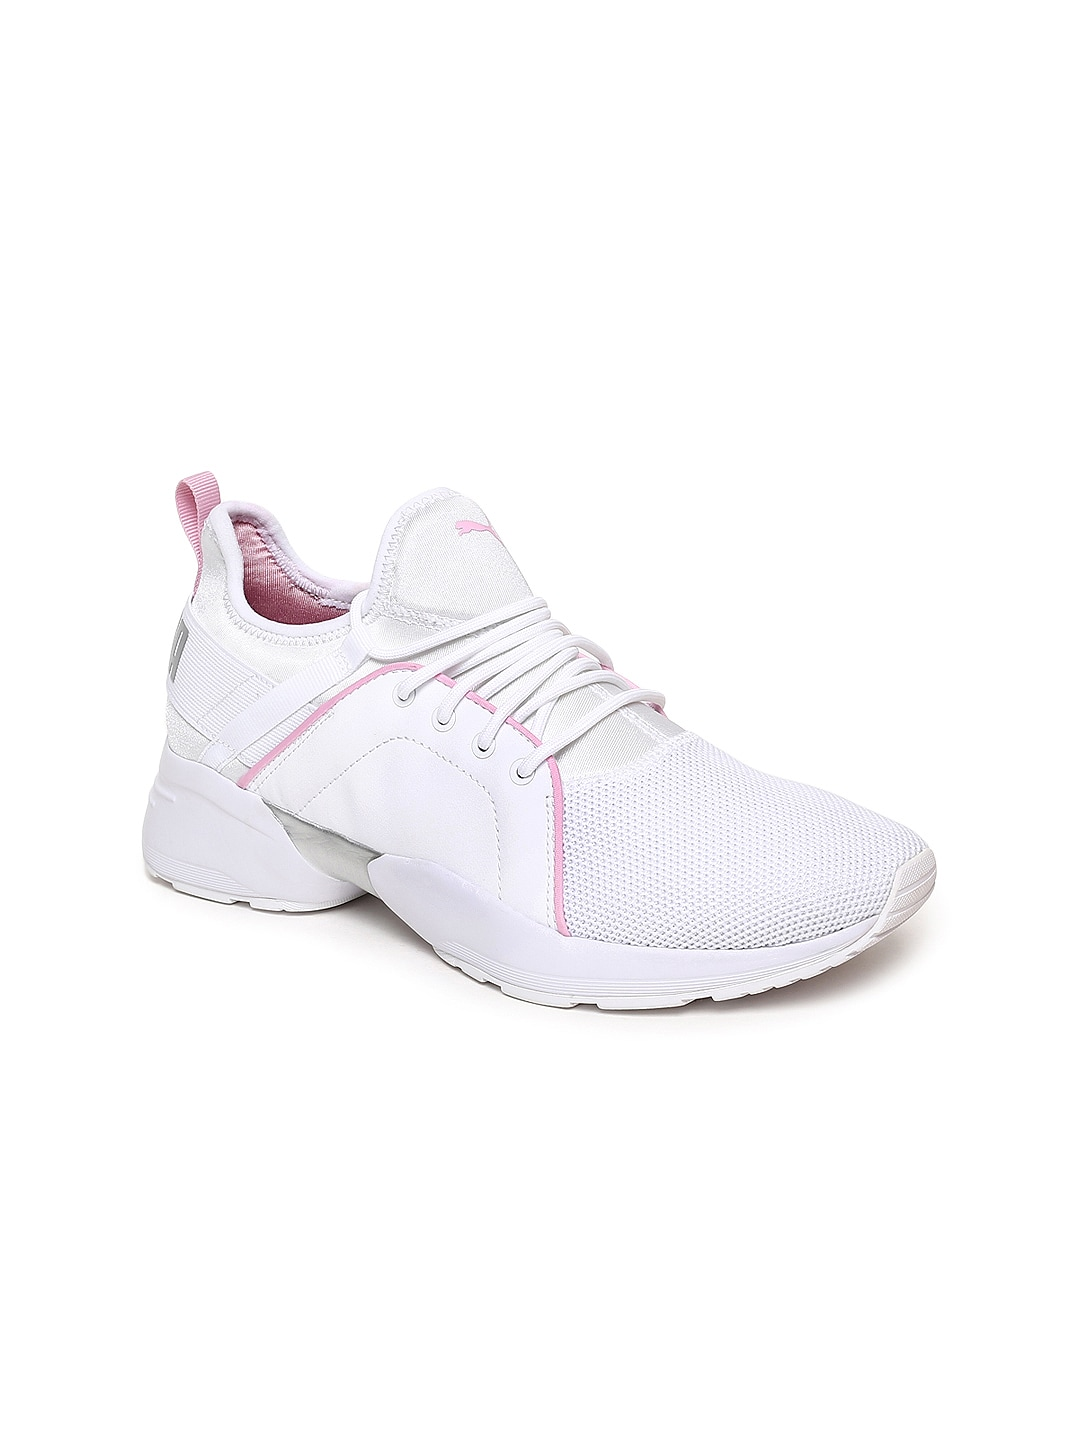 4454dca0b48f Puma Women White And Blue Casual Shoes - Buy Puma Women White And Blue  Casual Shoes online in India